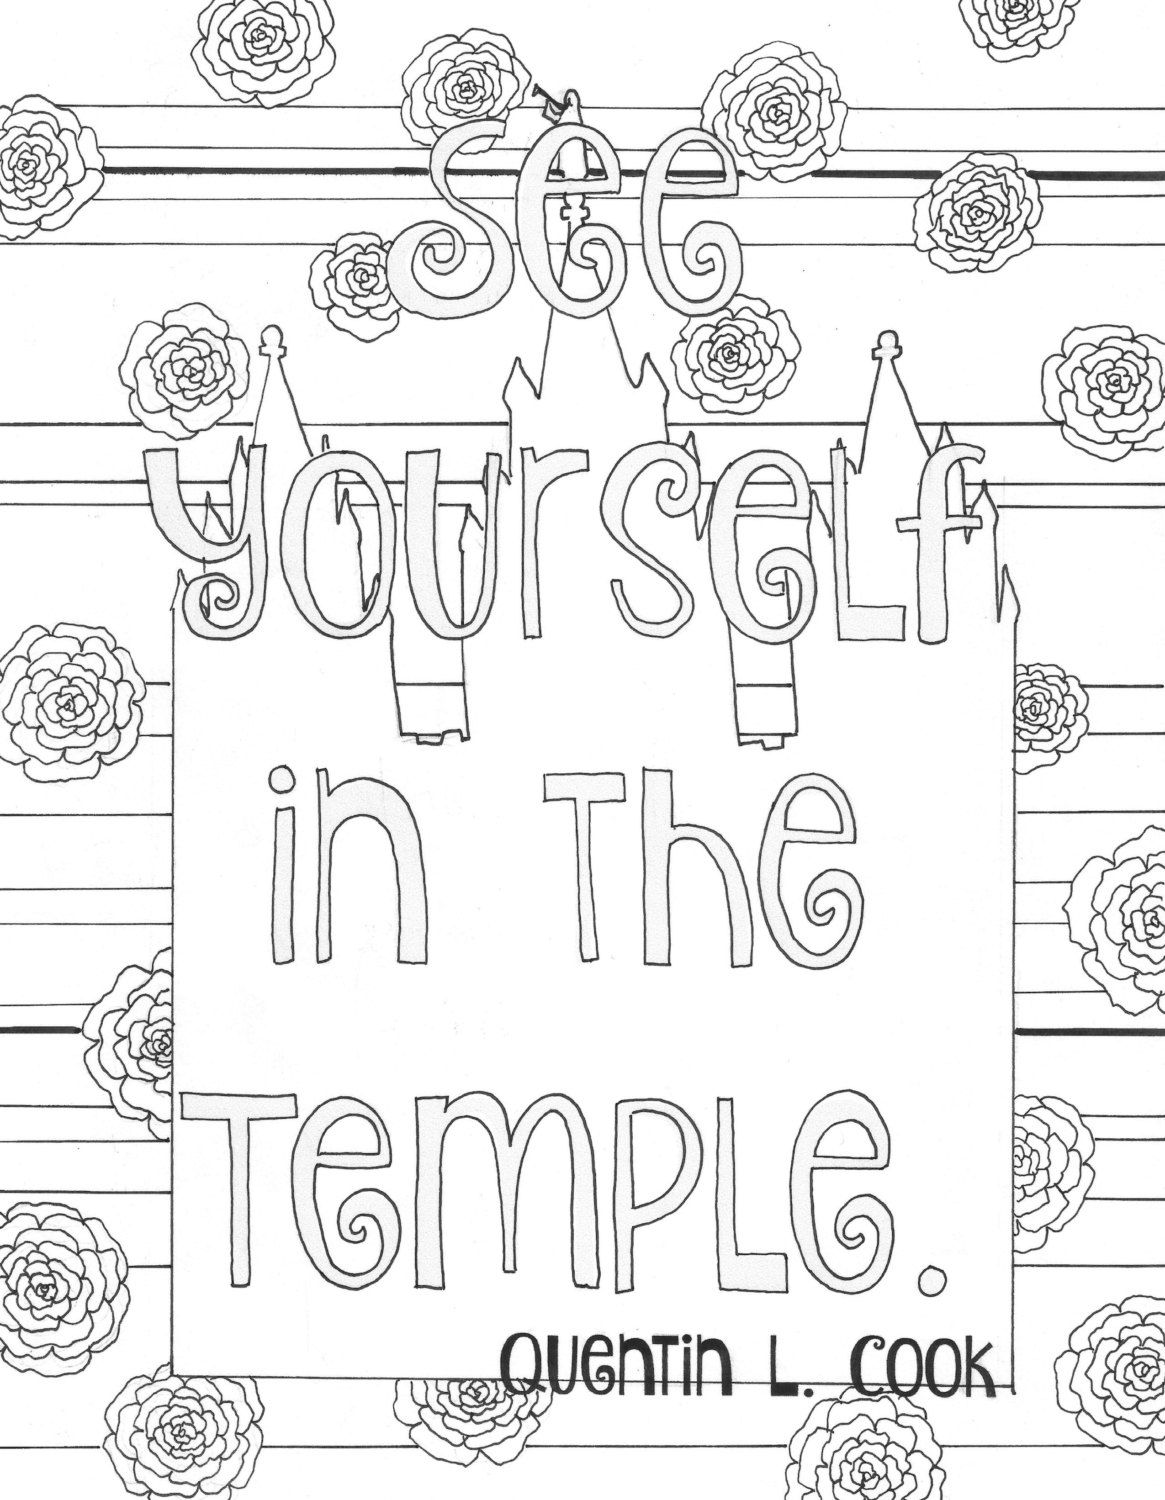 lds mormon general conference quote coloring page by essenceofink